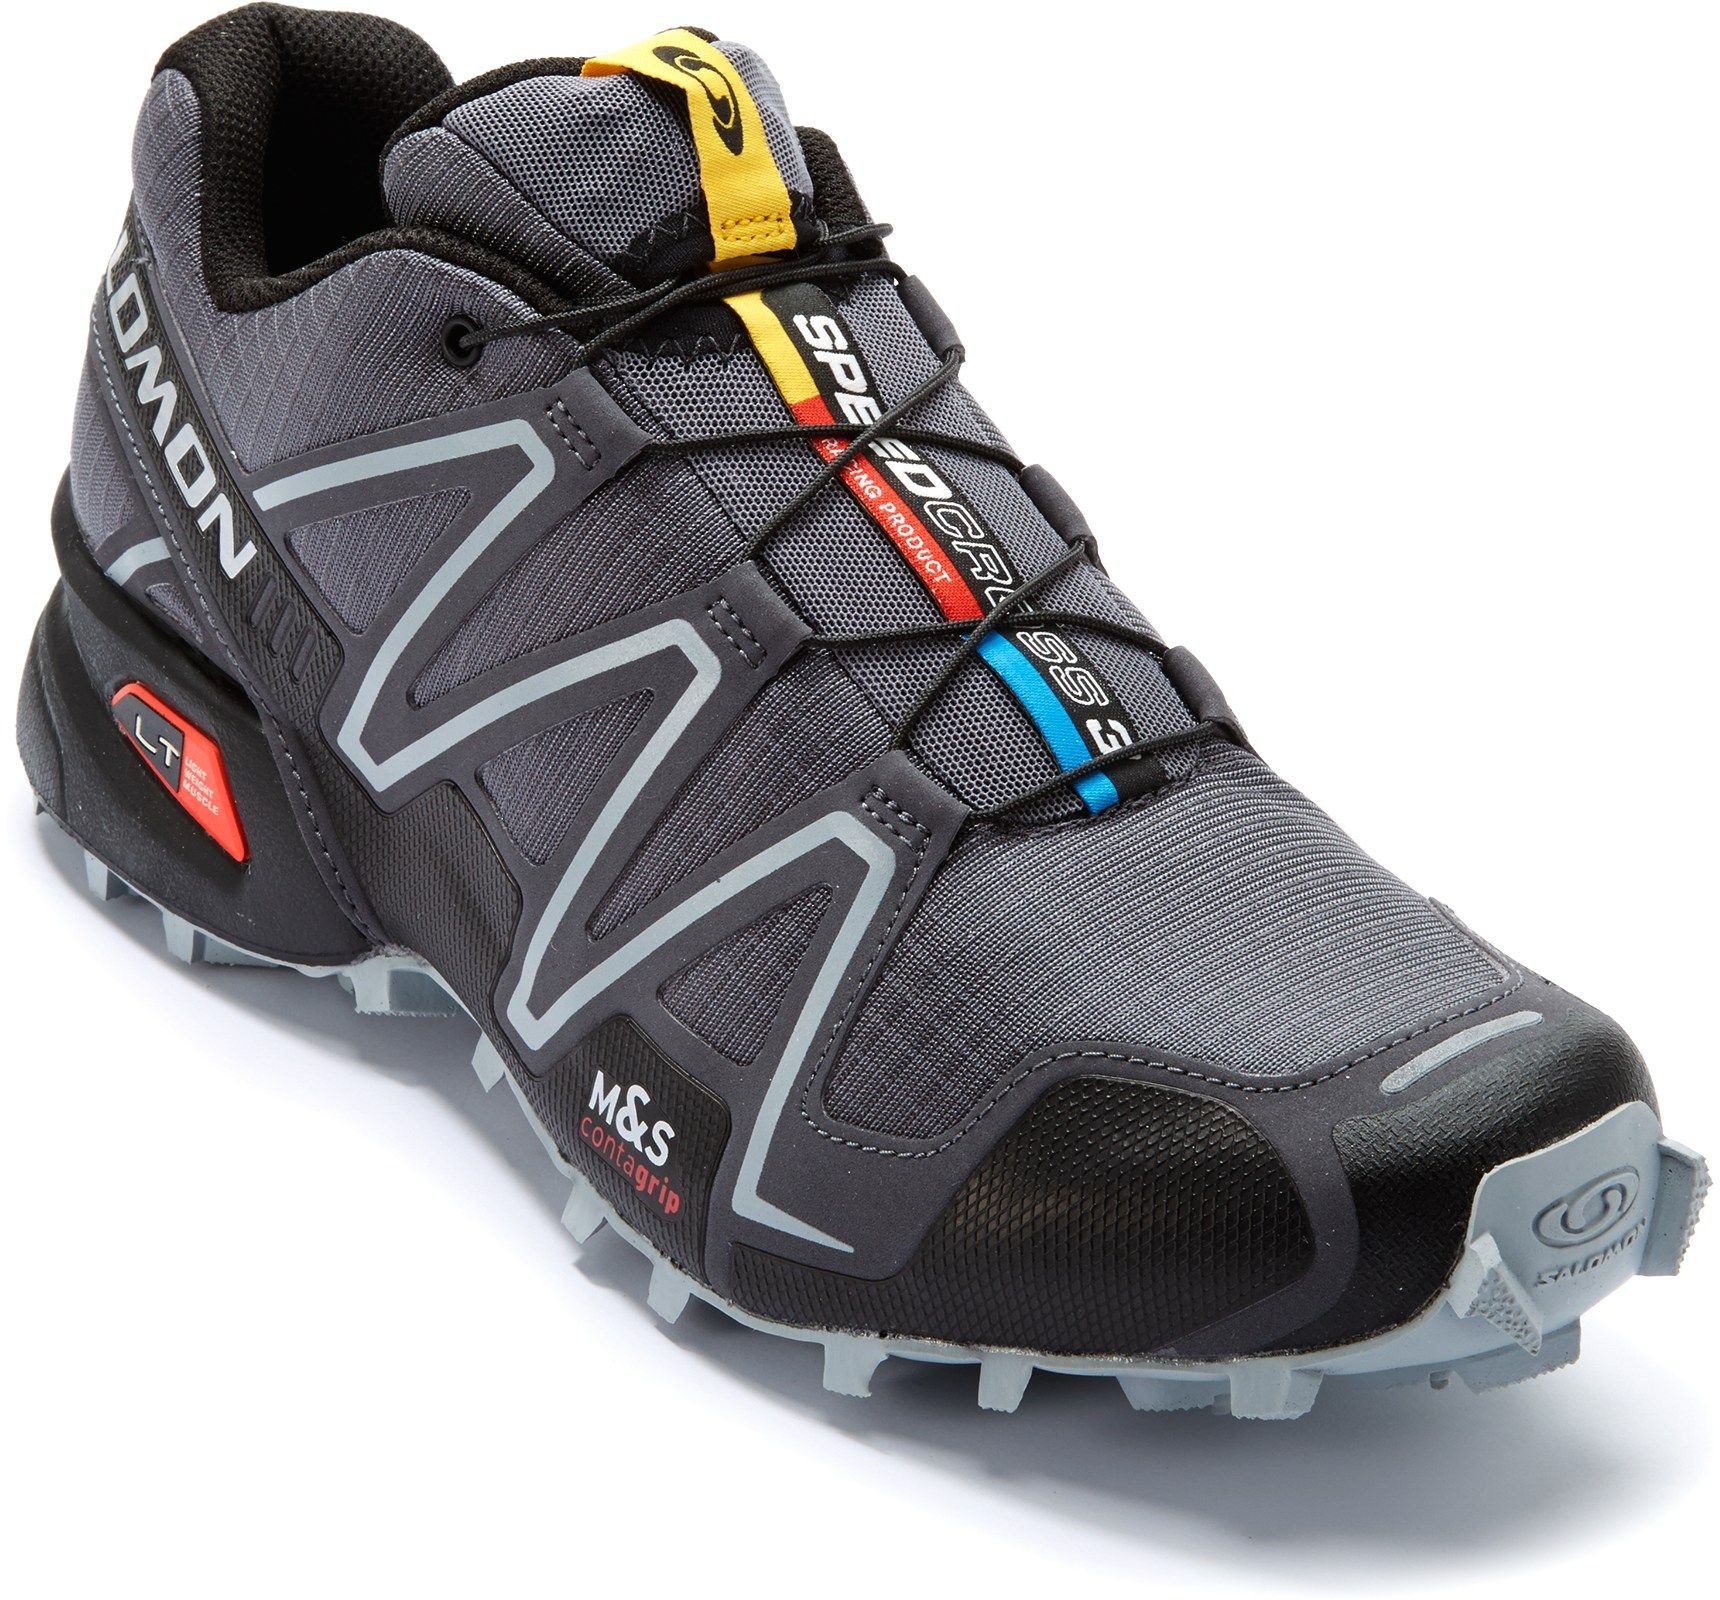 Salomon Speedcross 3 Trail Running Shoes Men's | REI Co op